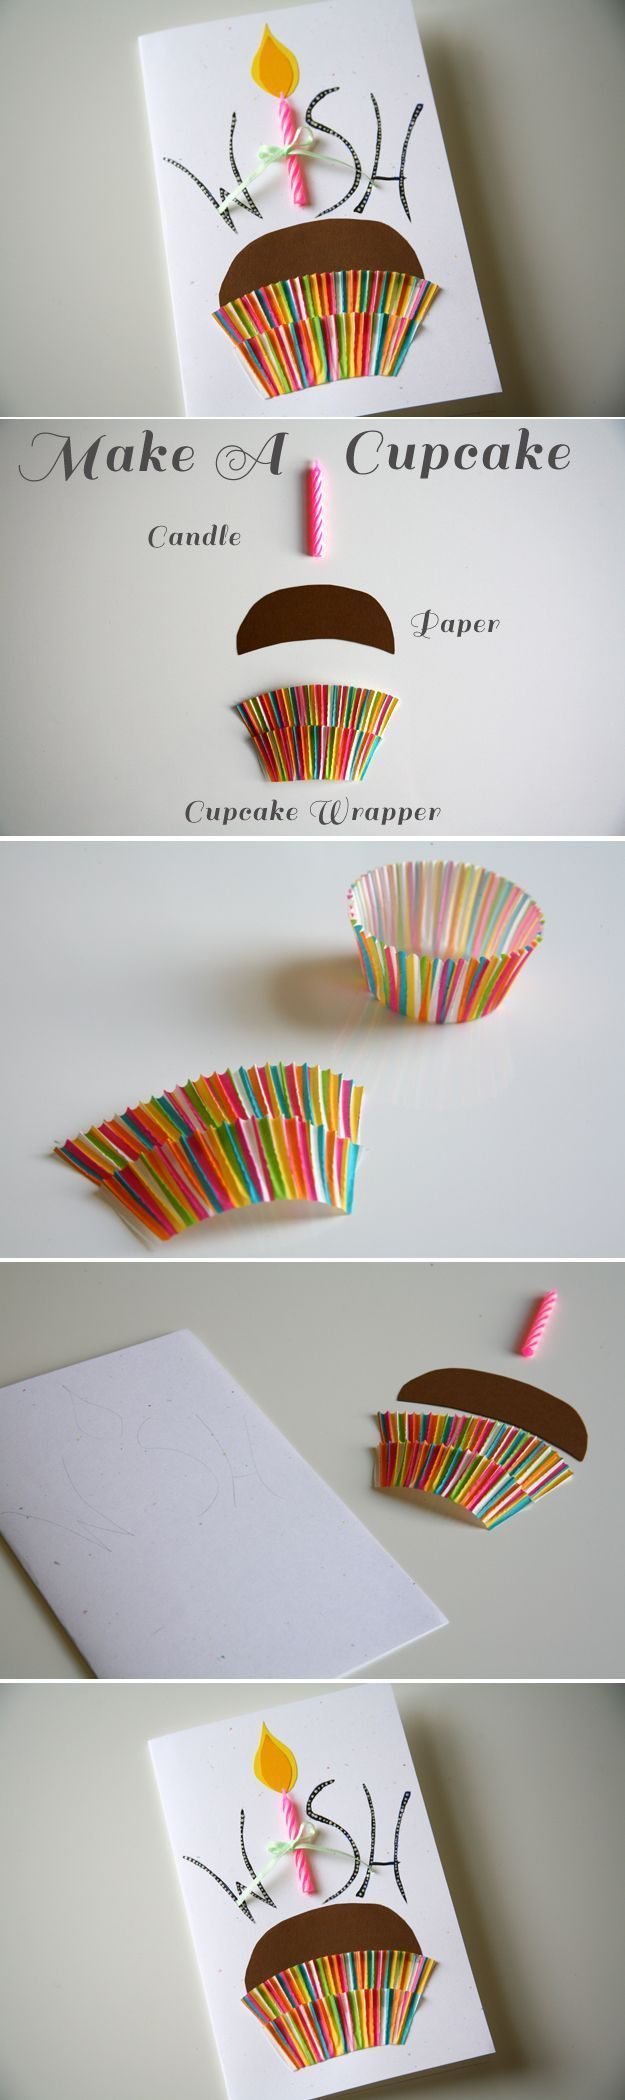 Make this simple and precious birthday invitation using only a few items that you probably have around the house